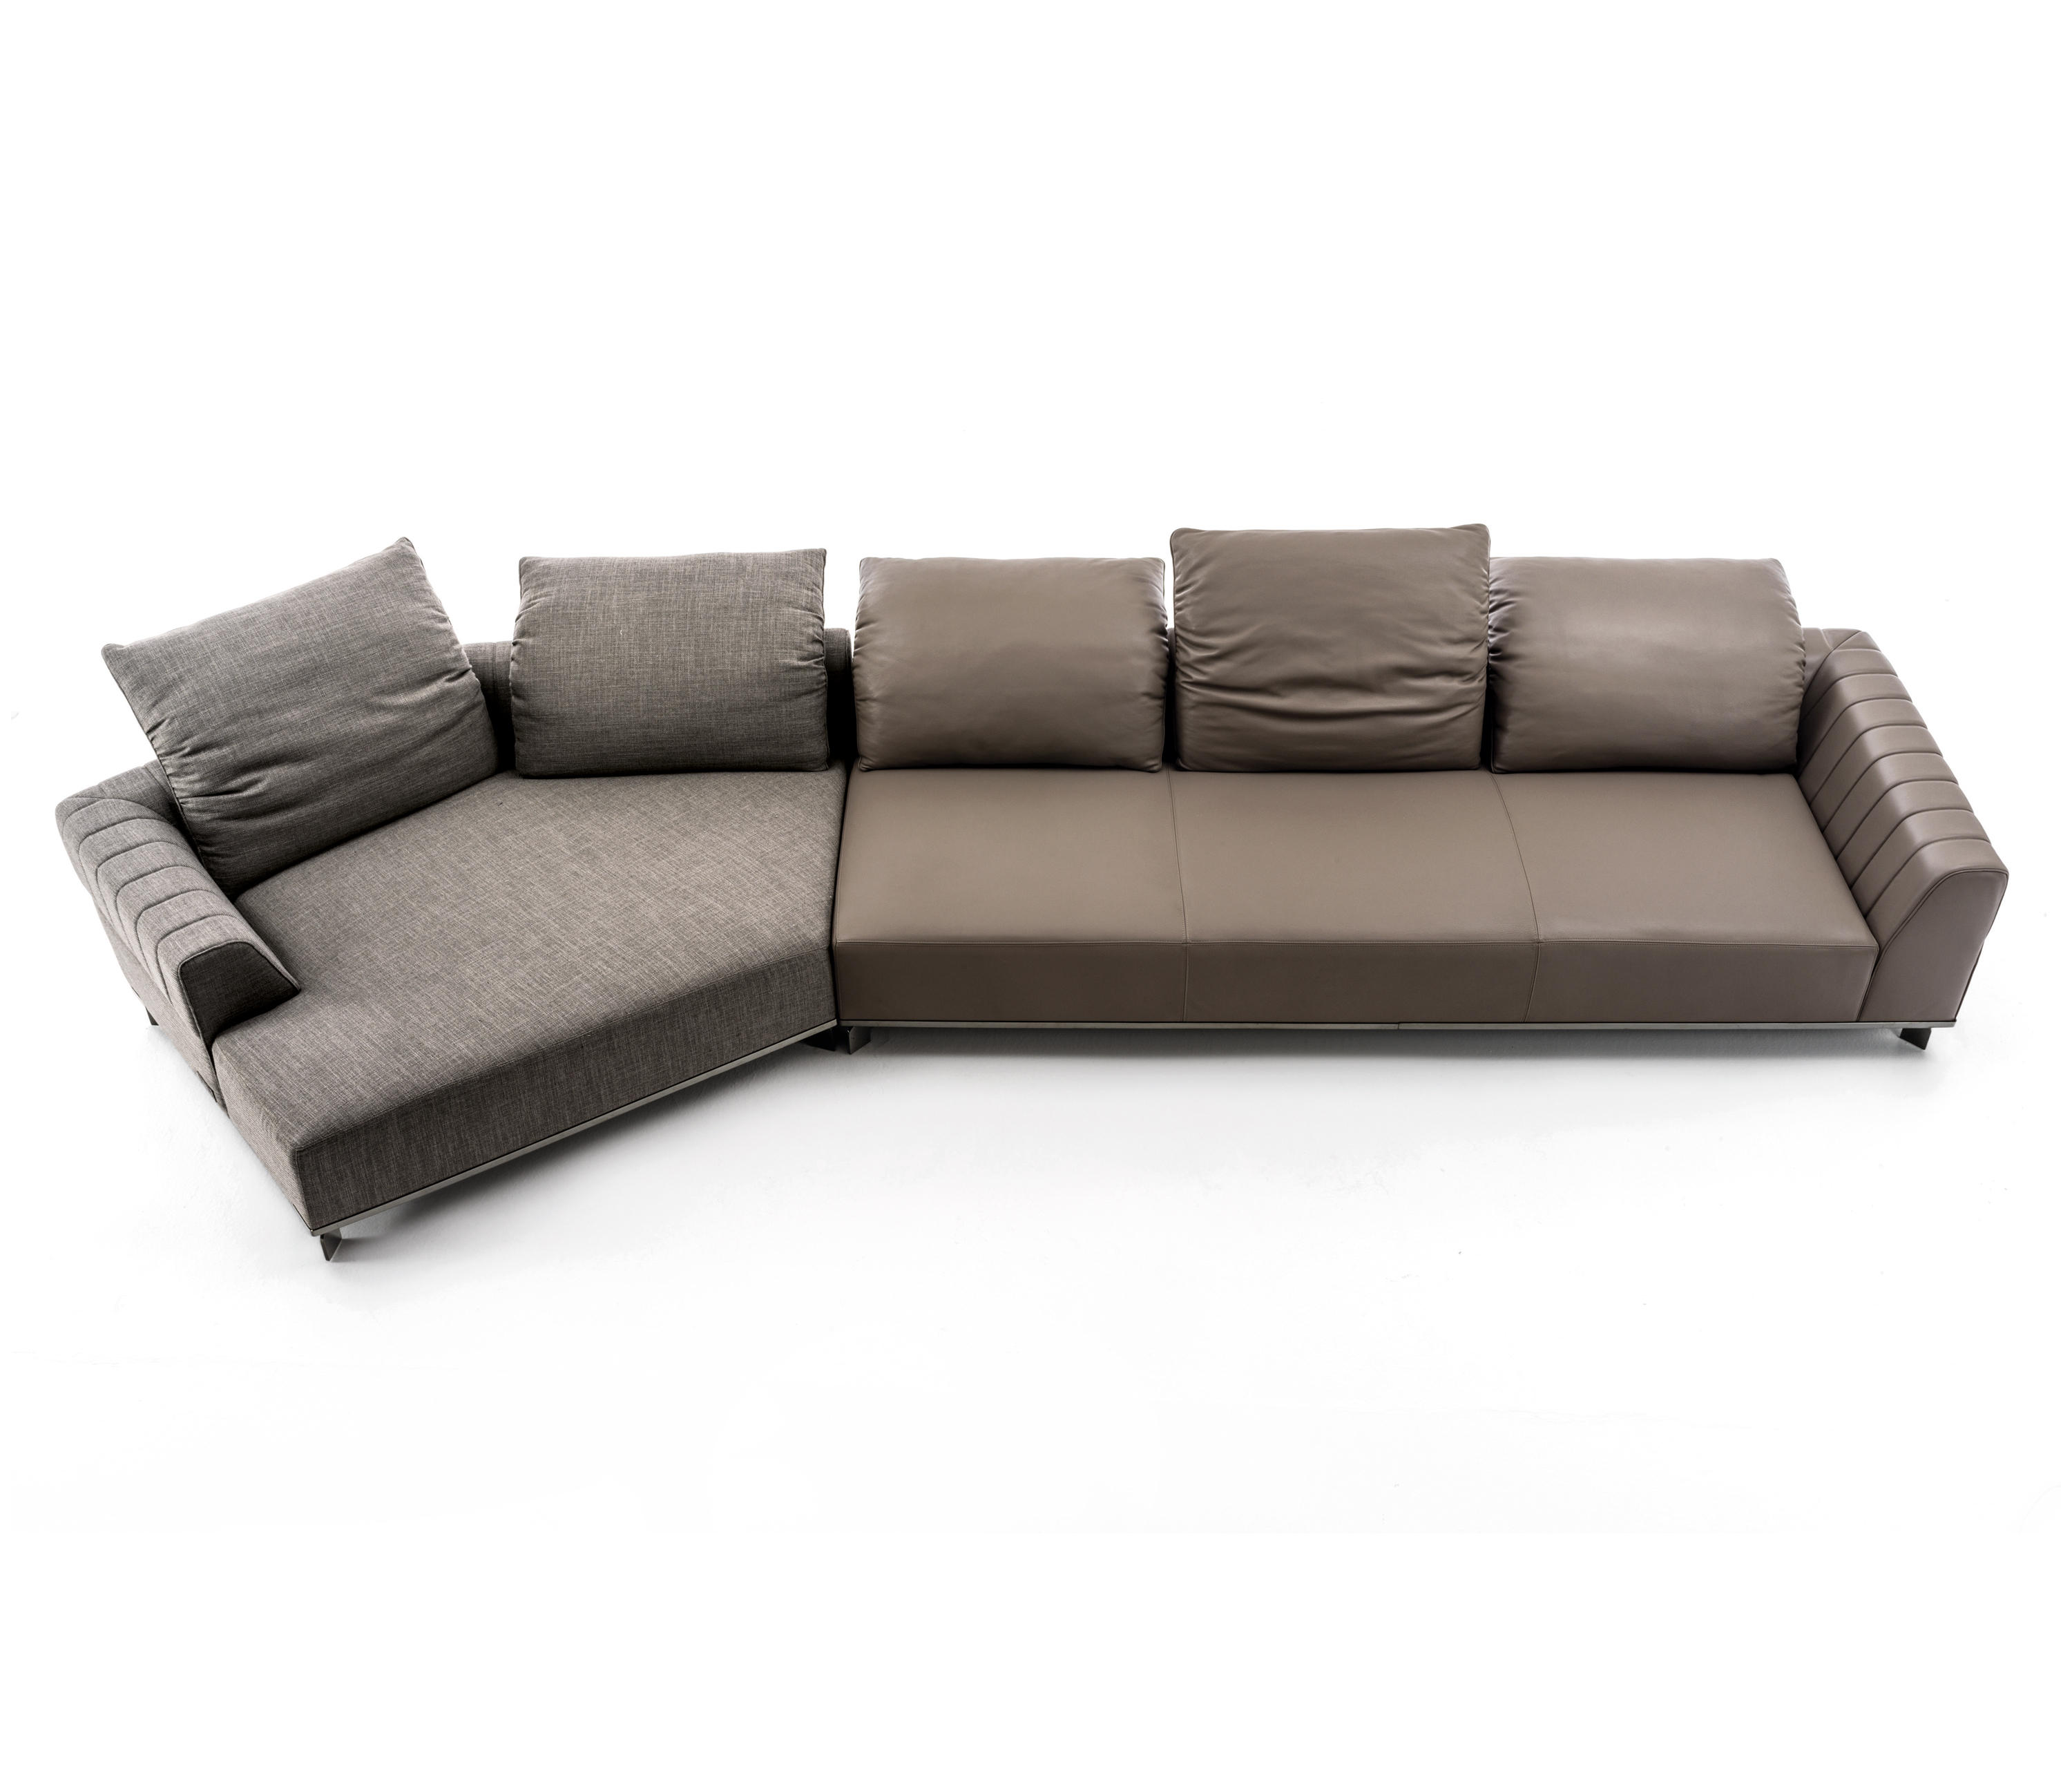 Sheffield Sessel Sheffield Sofa 3740138 Ashley Furniture Sheffield Platinum